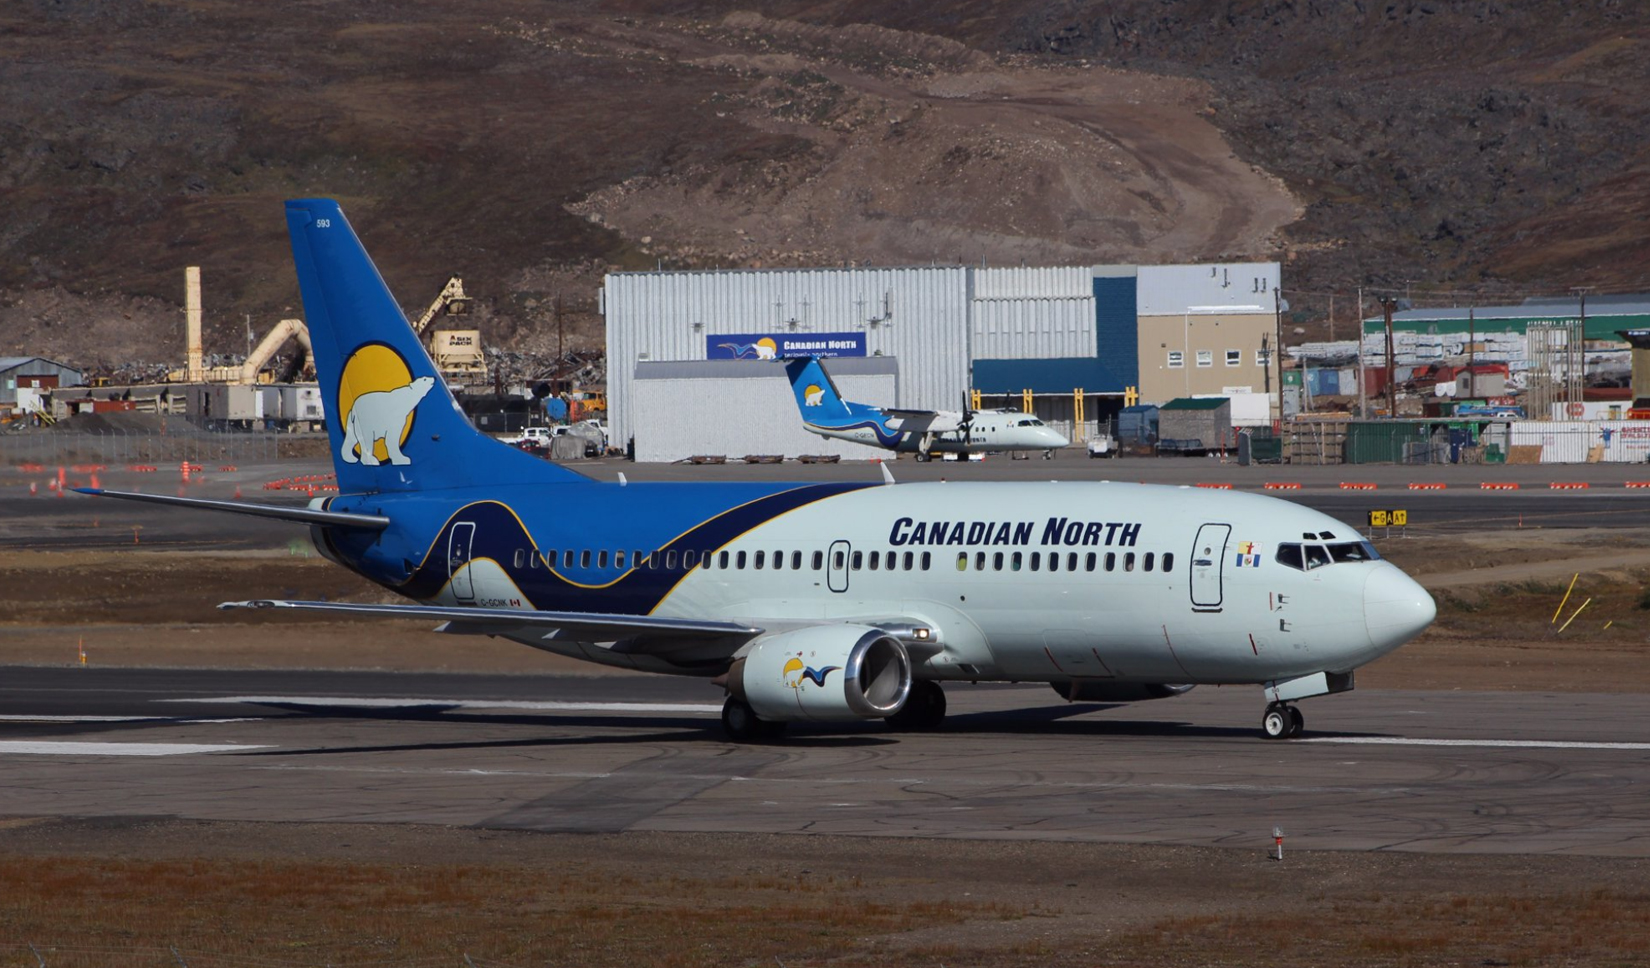 Canadian North Boeing 737-300